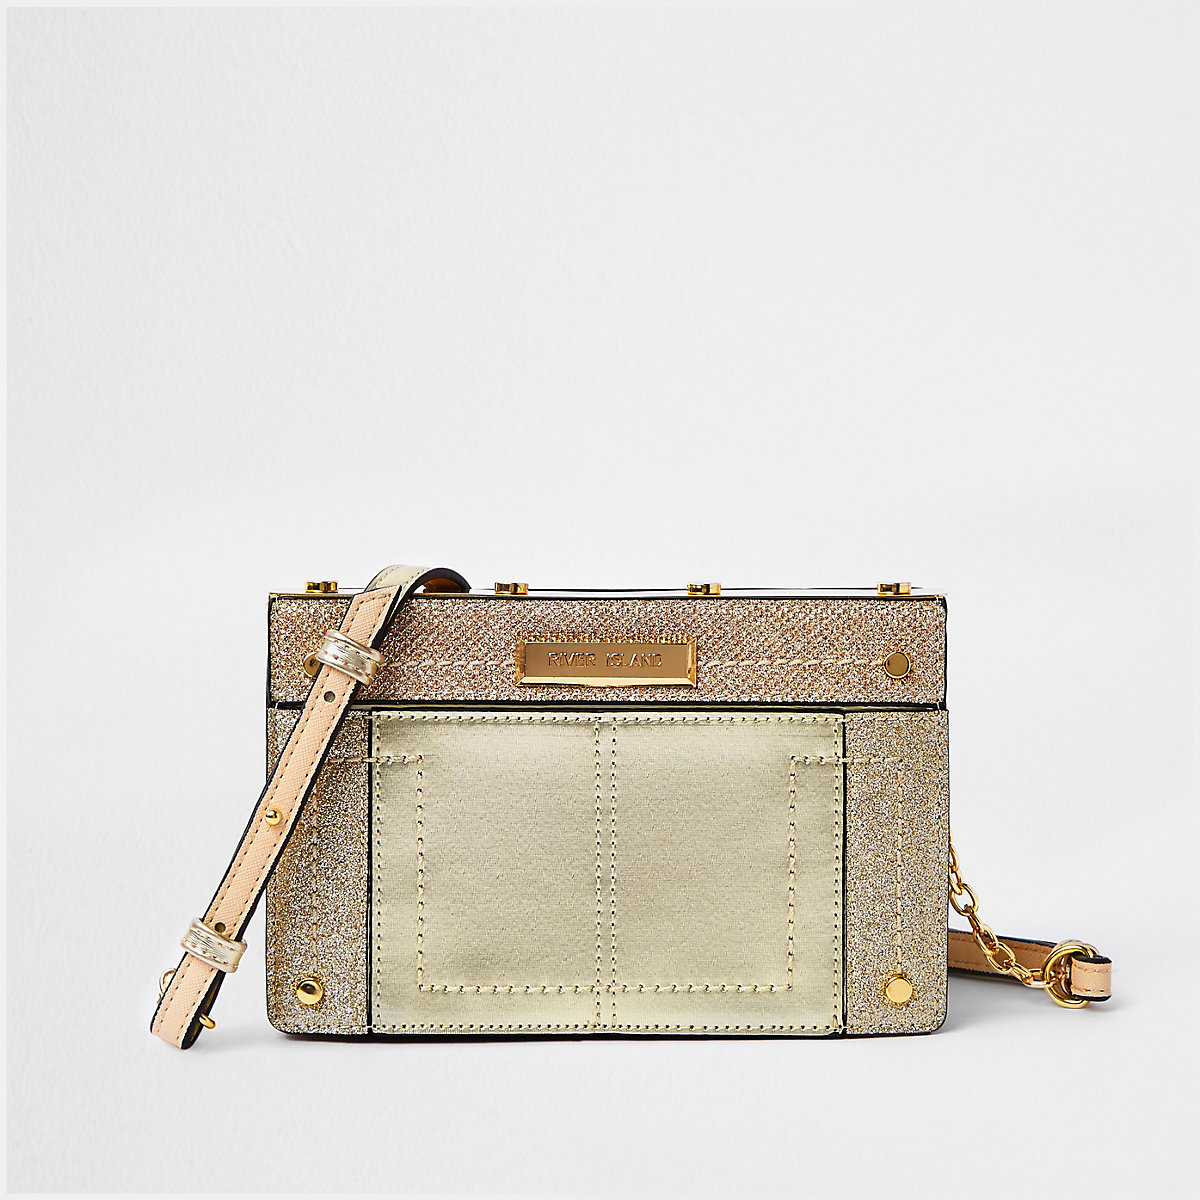 Gold metal small boxy cross body bag